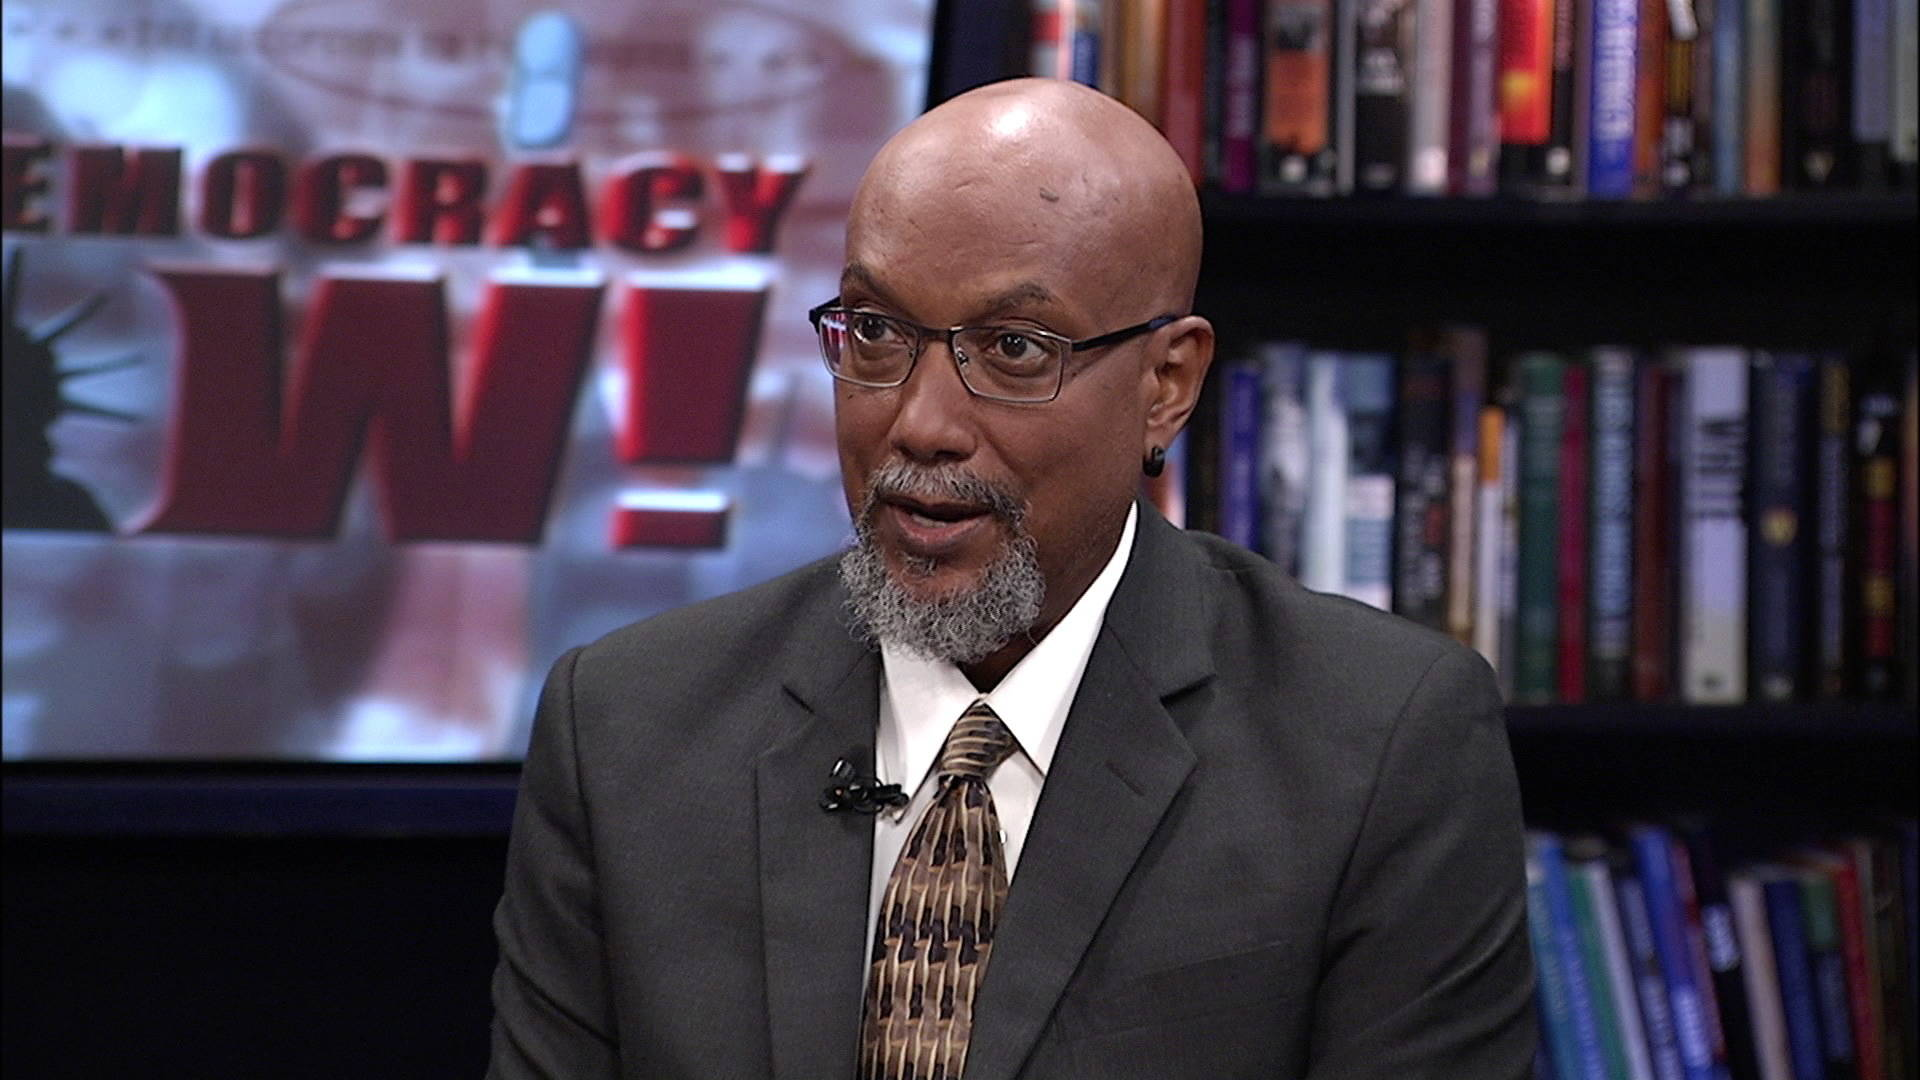 Meet Ajamu Baraka: Green VP Candidate Aims to Continue the Legacy of W.E.B. Du Bois & Malcolm X | Democracy Now!